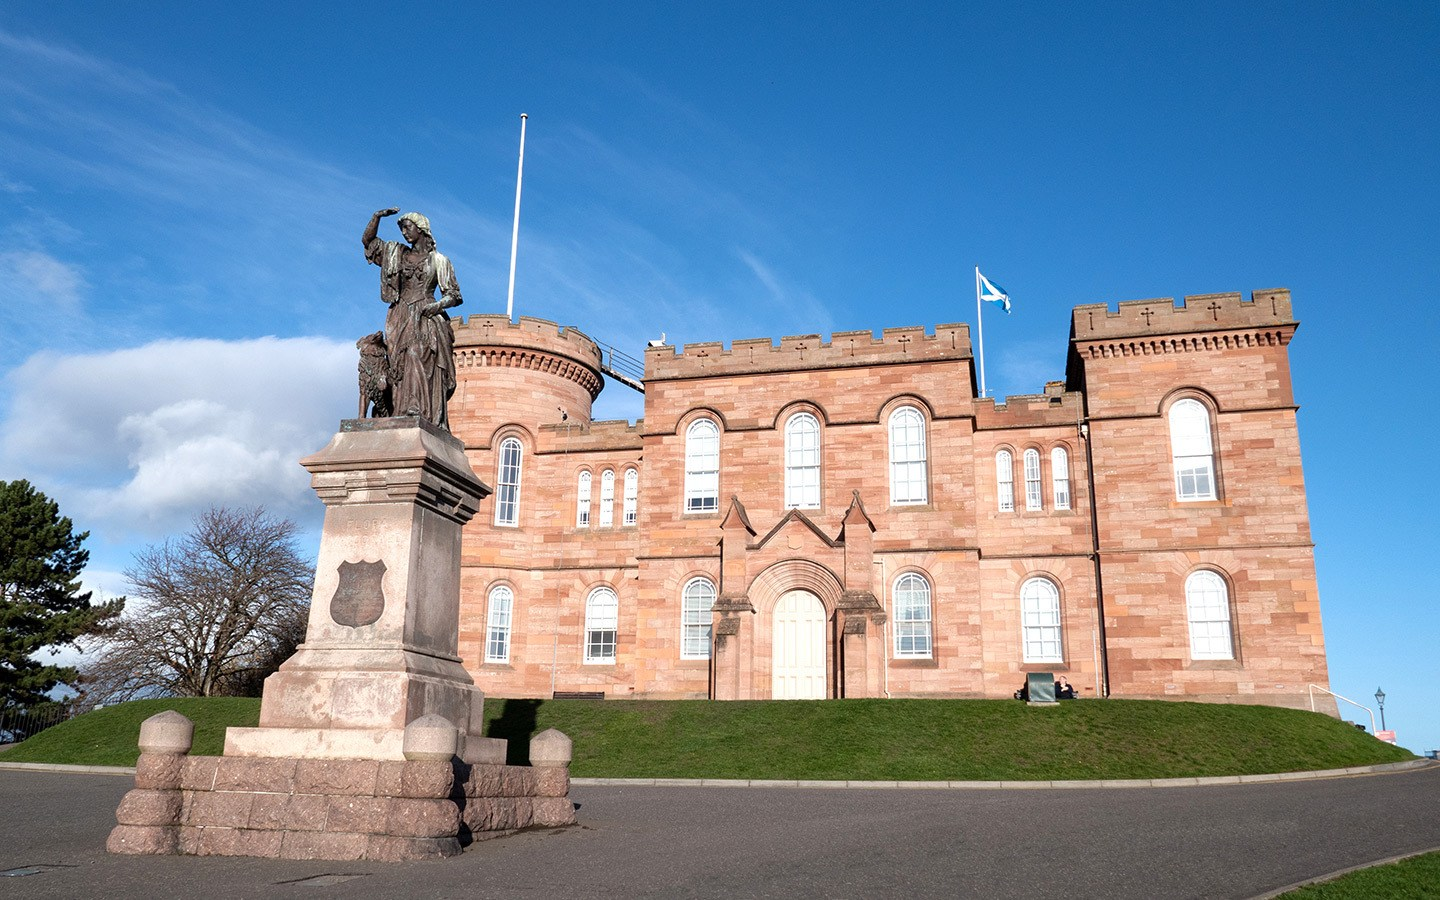 Outside Inverness Castle and statue of Flora MacDonald